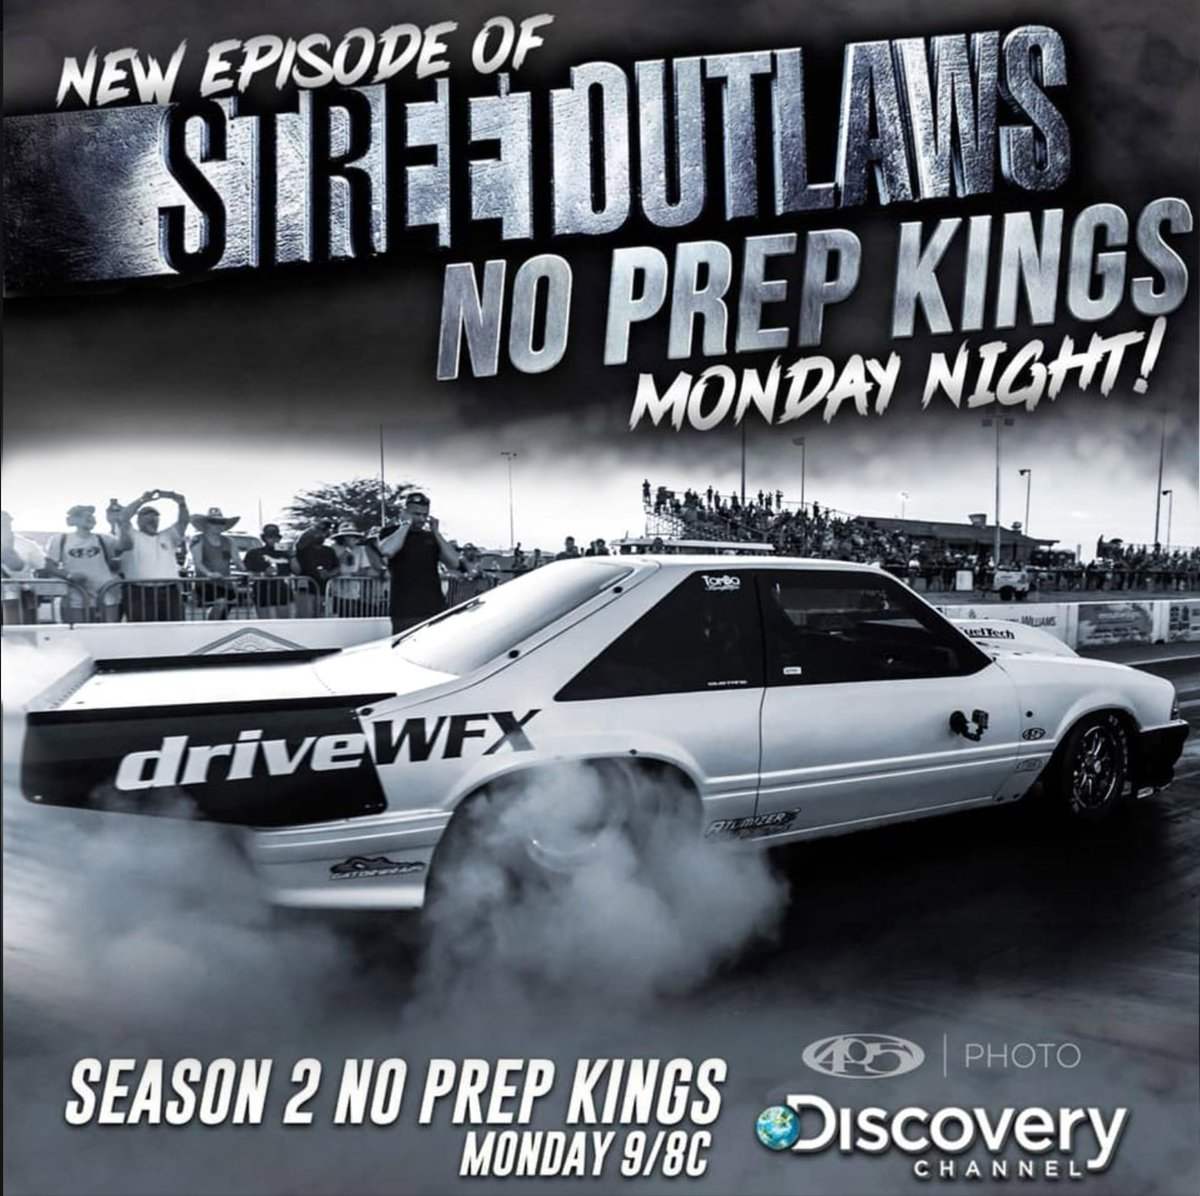 Catch the action tonight as Racers move into the second half of the seventh race in the No Prep Kings series, and with most of the top points leaders still in the race, the pressure is on for them to go all the way.  #noprepkings #streetoutlaws  #Discovery #driveWFX #teamWFX